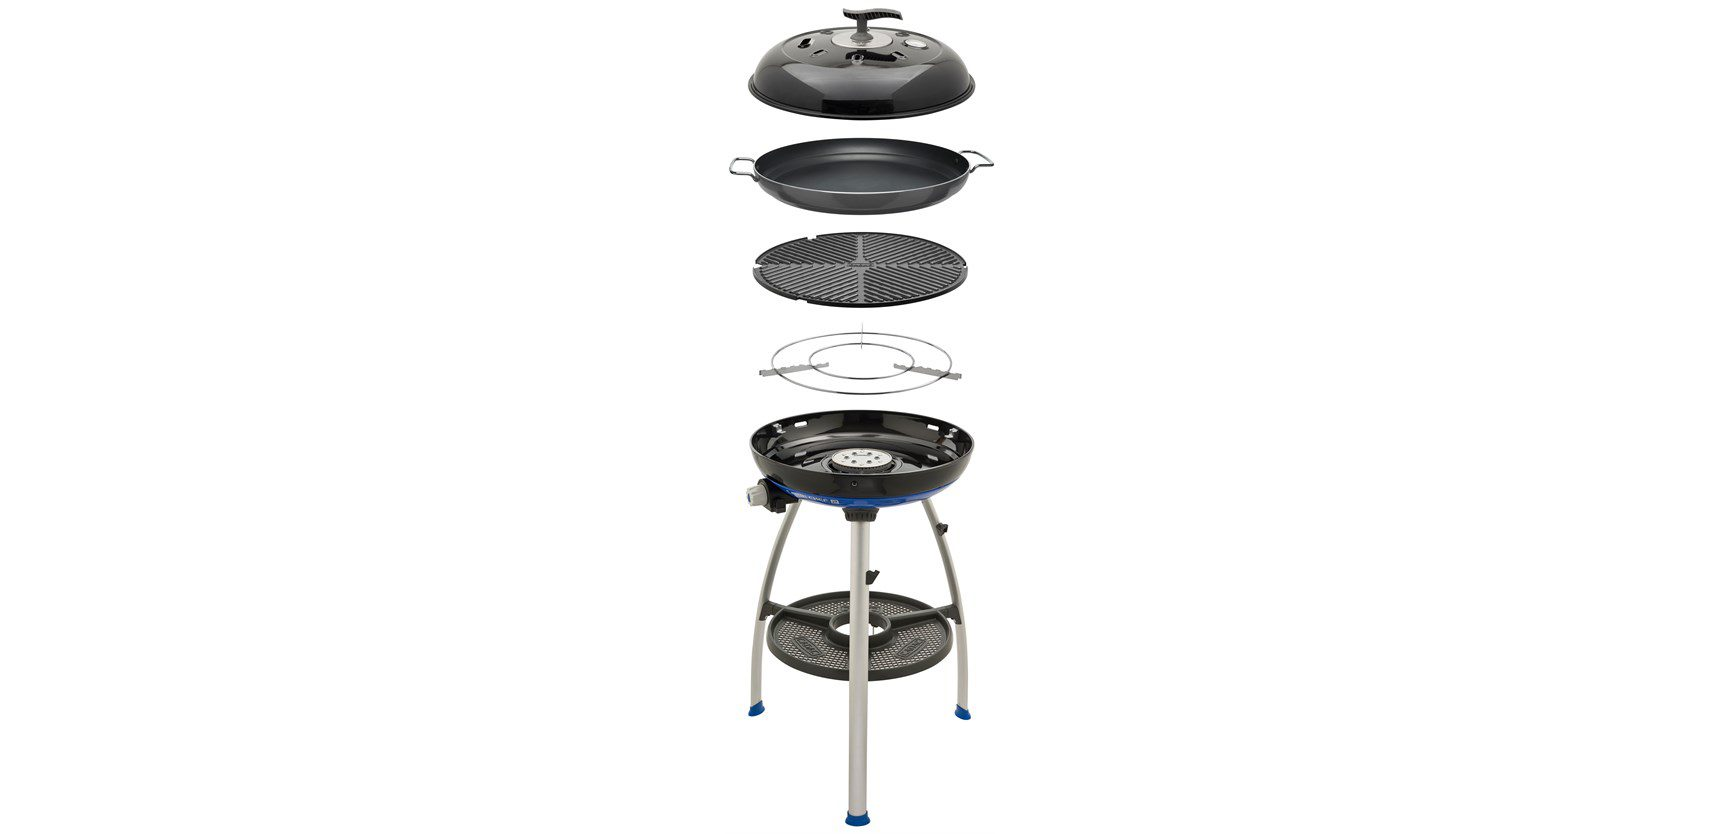 Cadac Carri Chef Paella Pan Combo